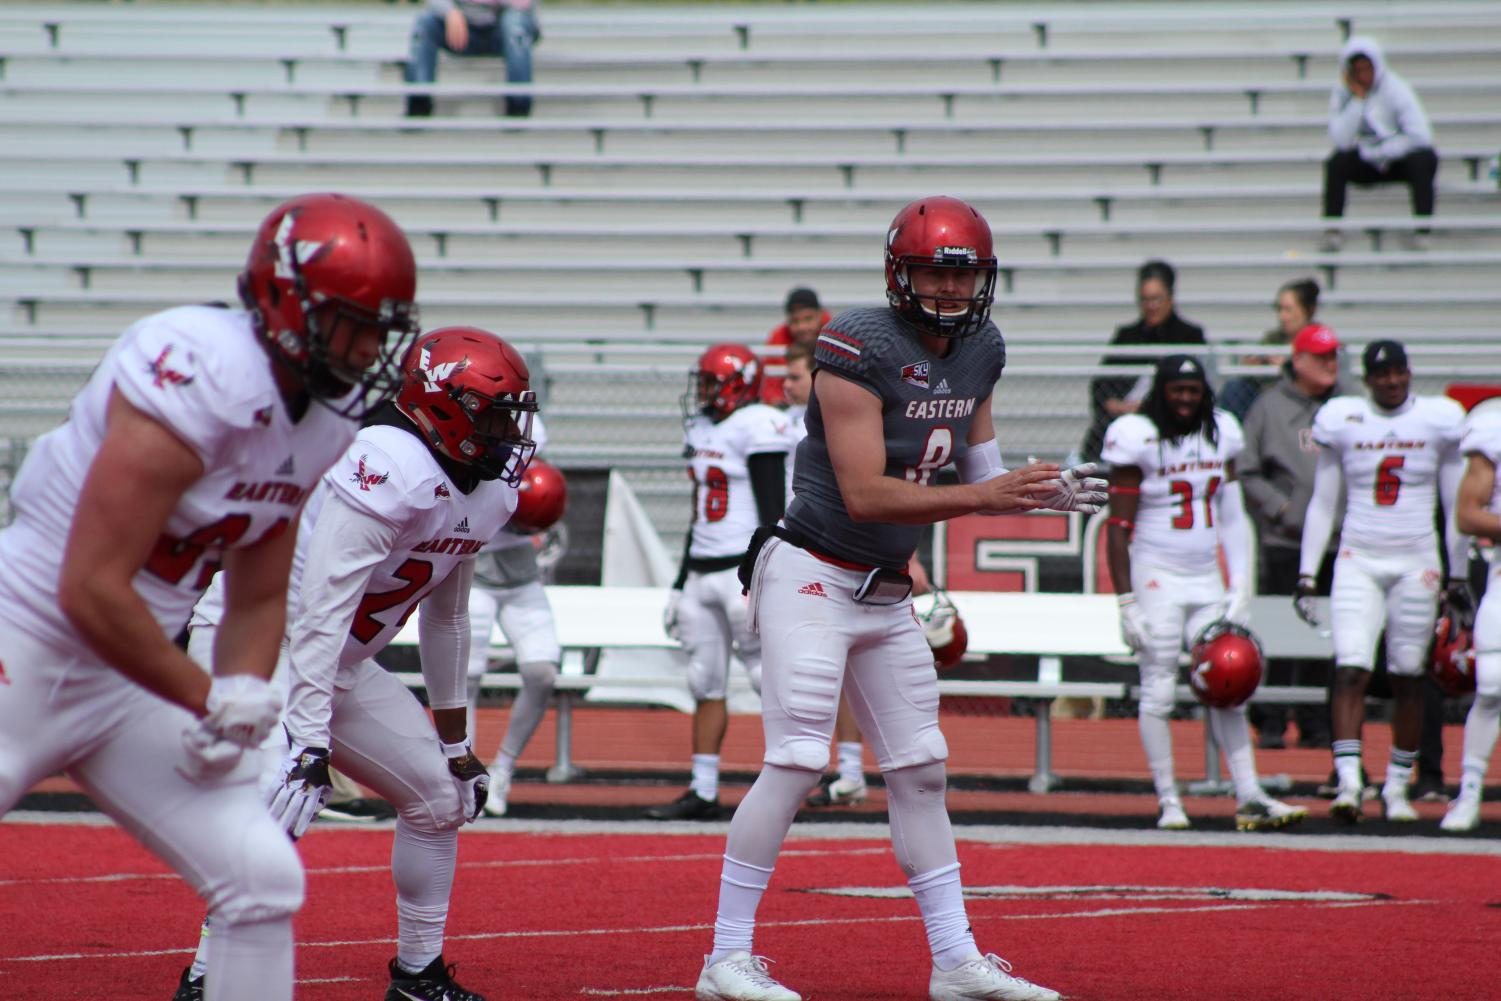 Senior quarterback Gage Gubrud waits to call for the ball at the Red-White game on April 28. Gubrud is entering his third season under center for the Eagles. | Mckenzie Ford for The Easterner